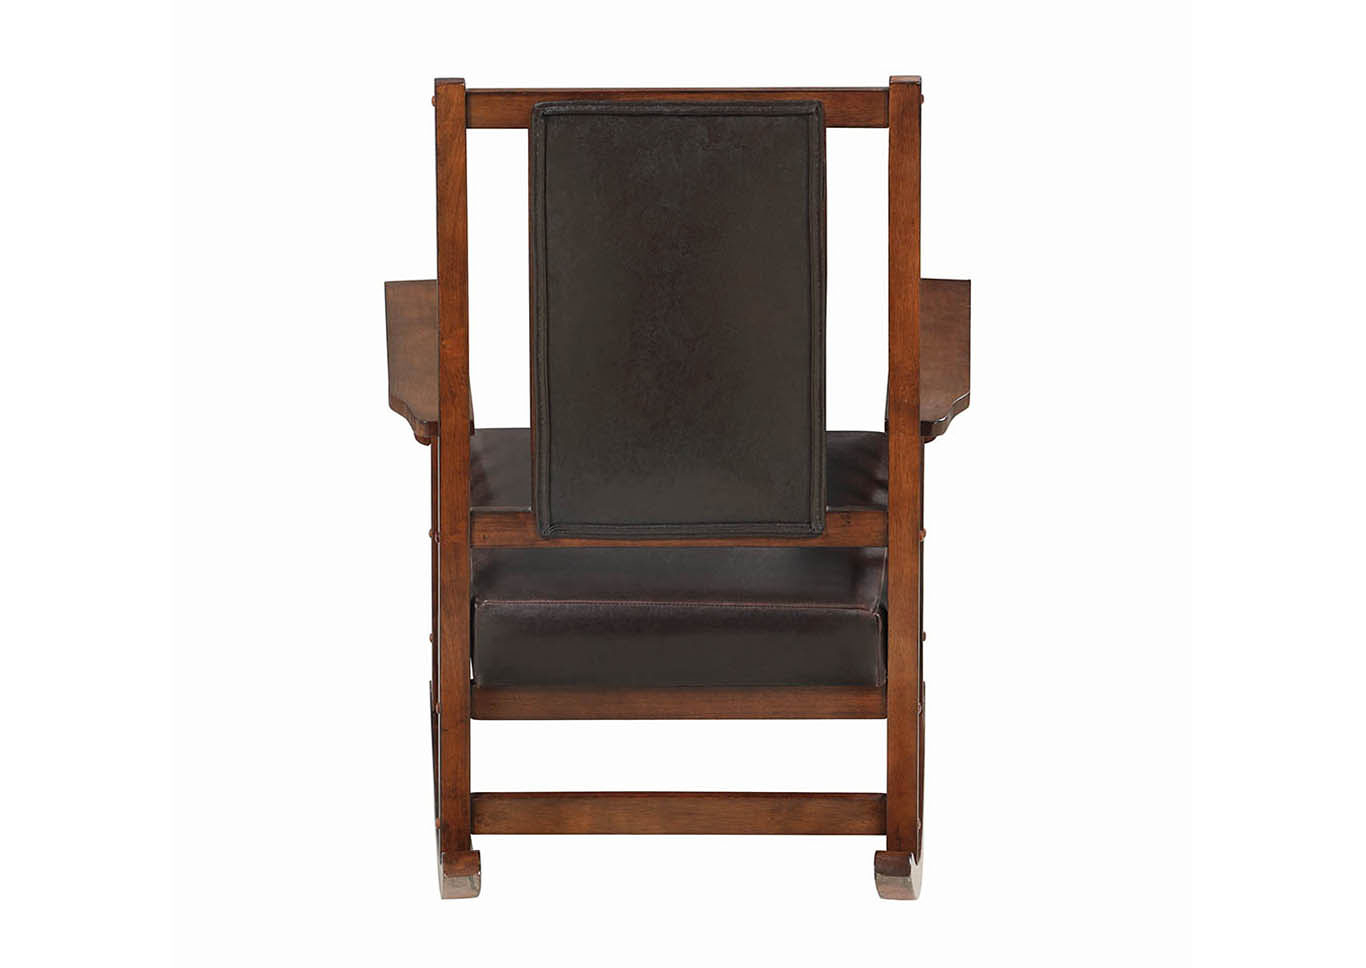 Harlem Furniture Tobacco Rocking Chair Pertaining To Tobacco Rocking Chairs (#11 of 20)